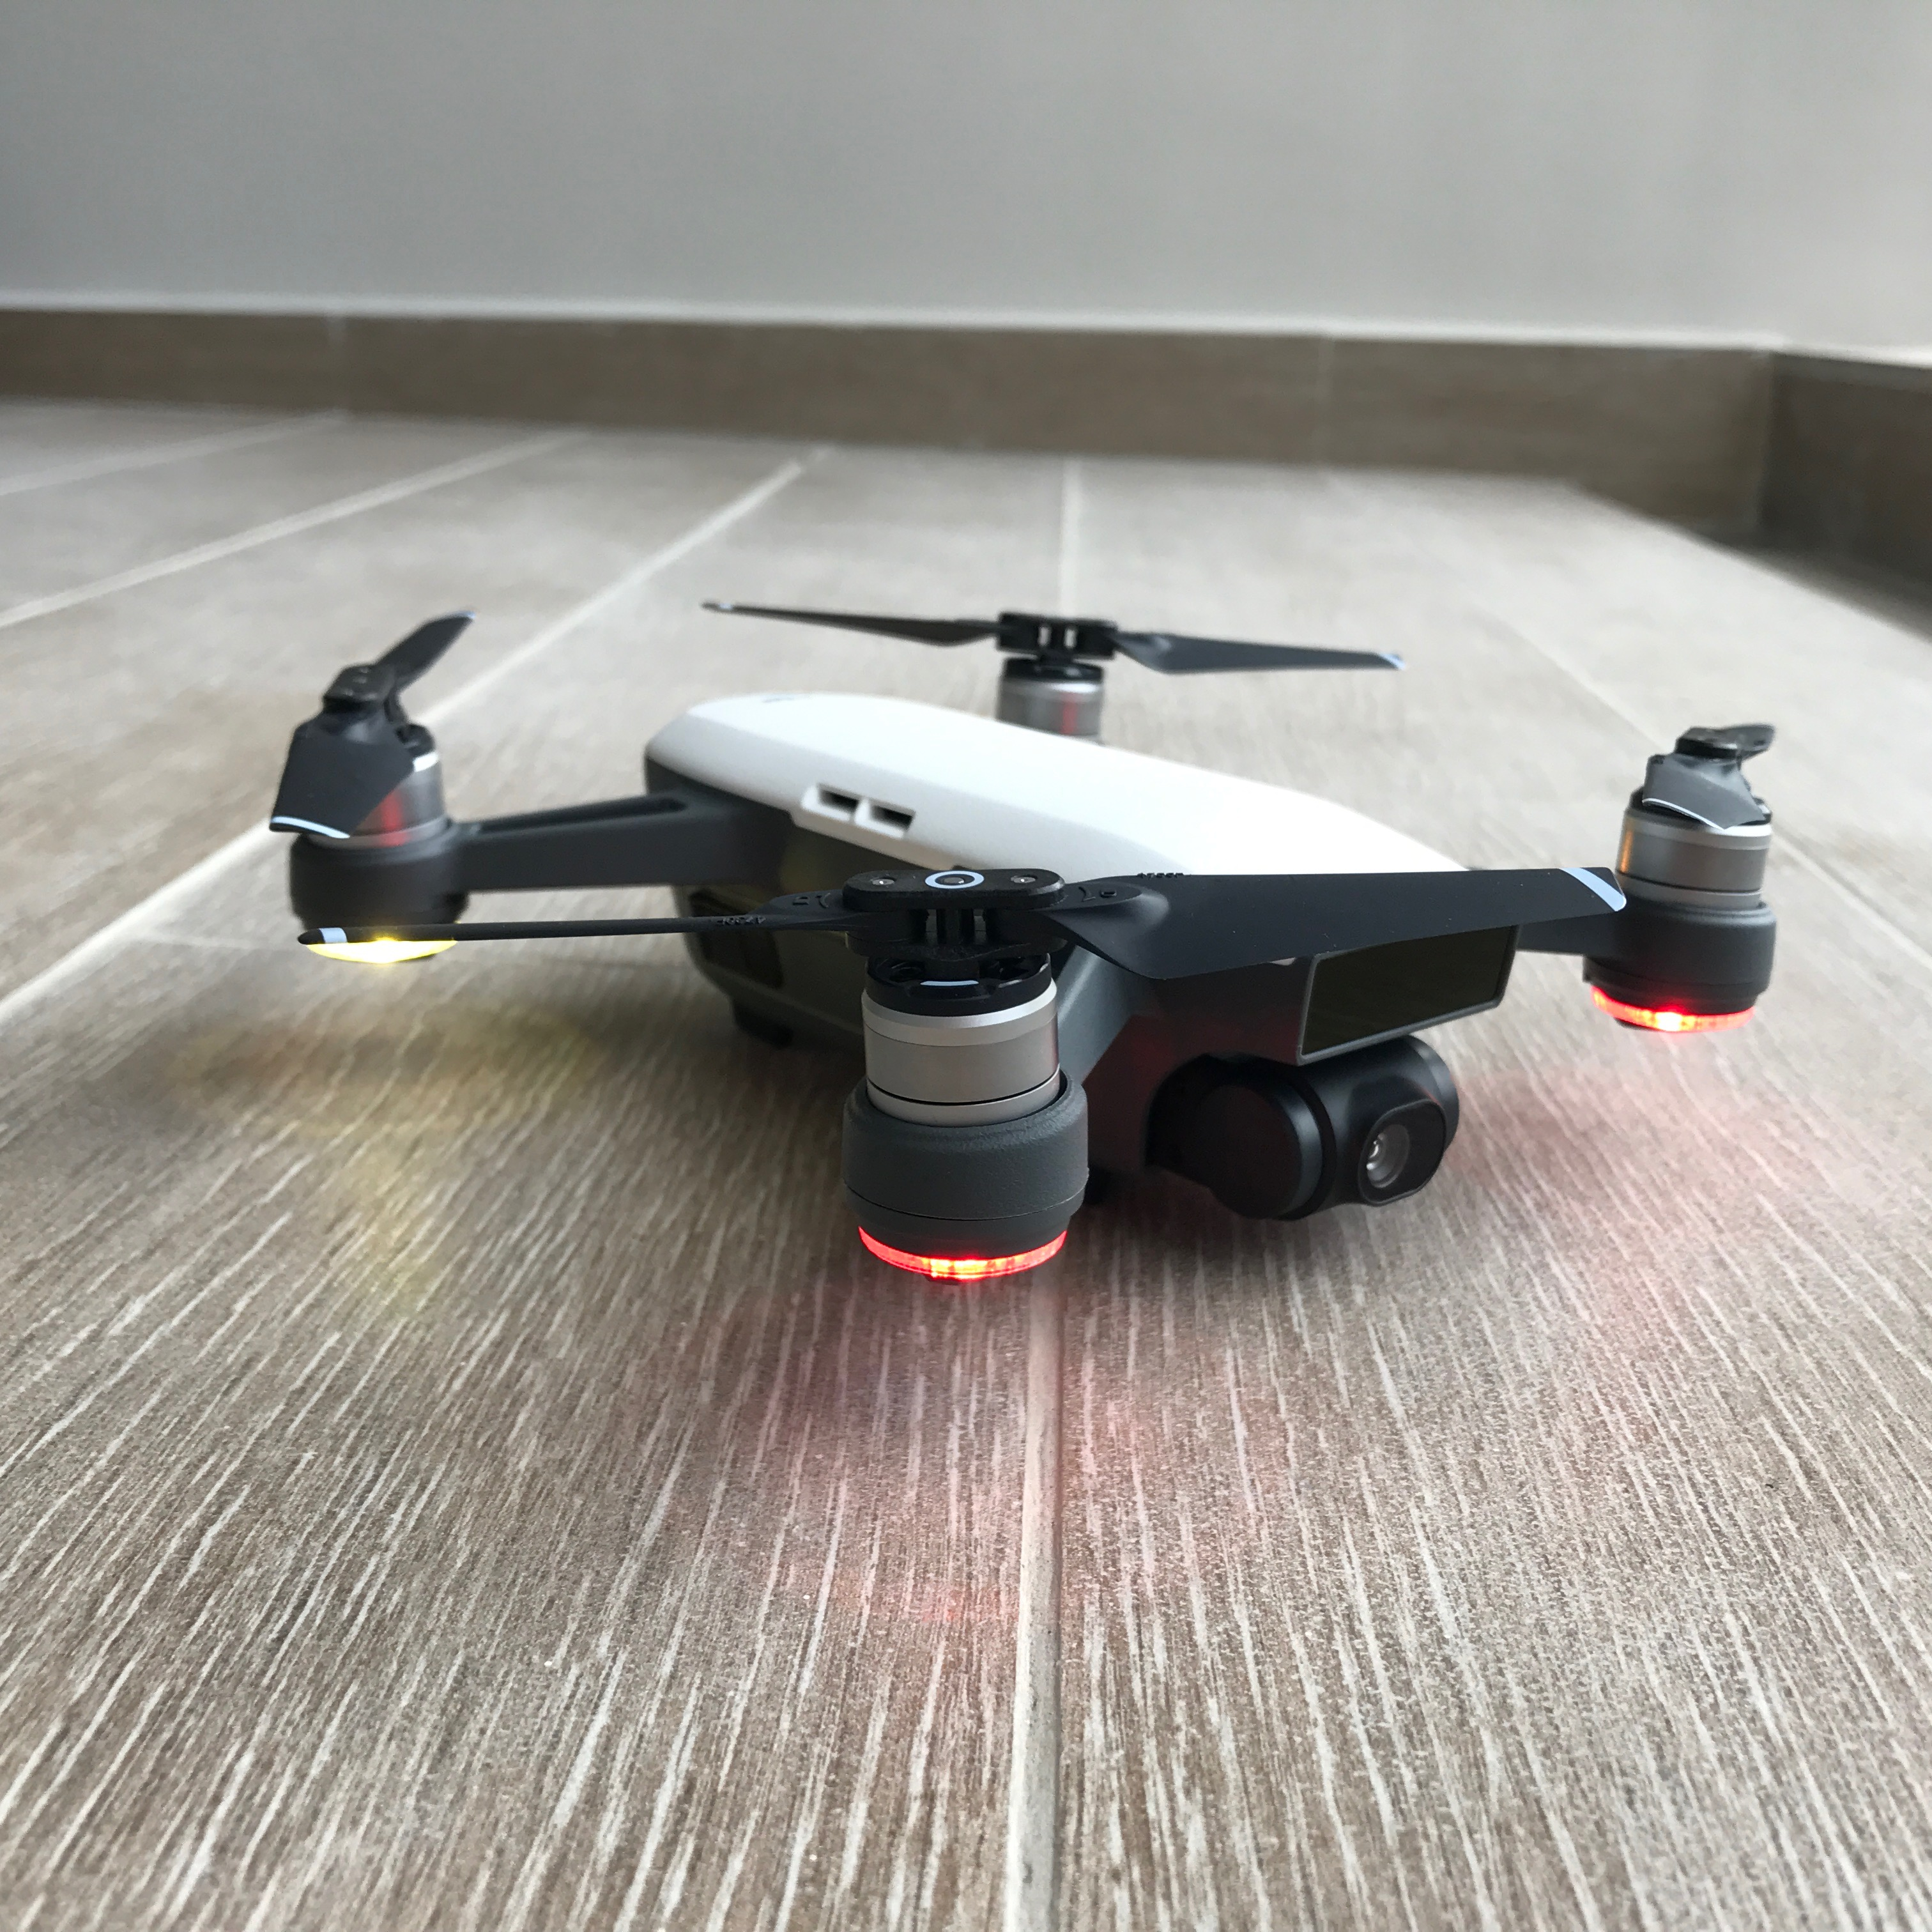 With DJI Spark, flying a drone can be a real fun activity ...